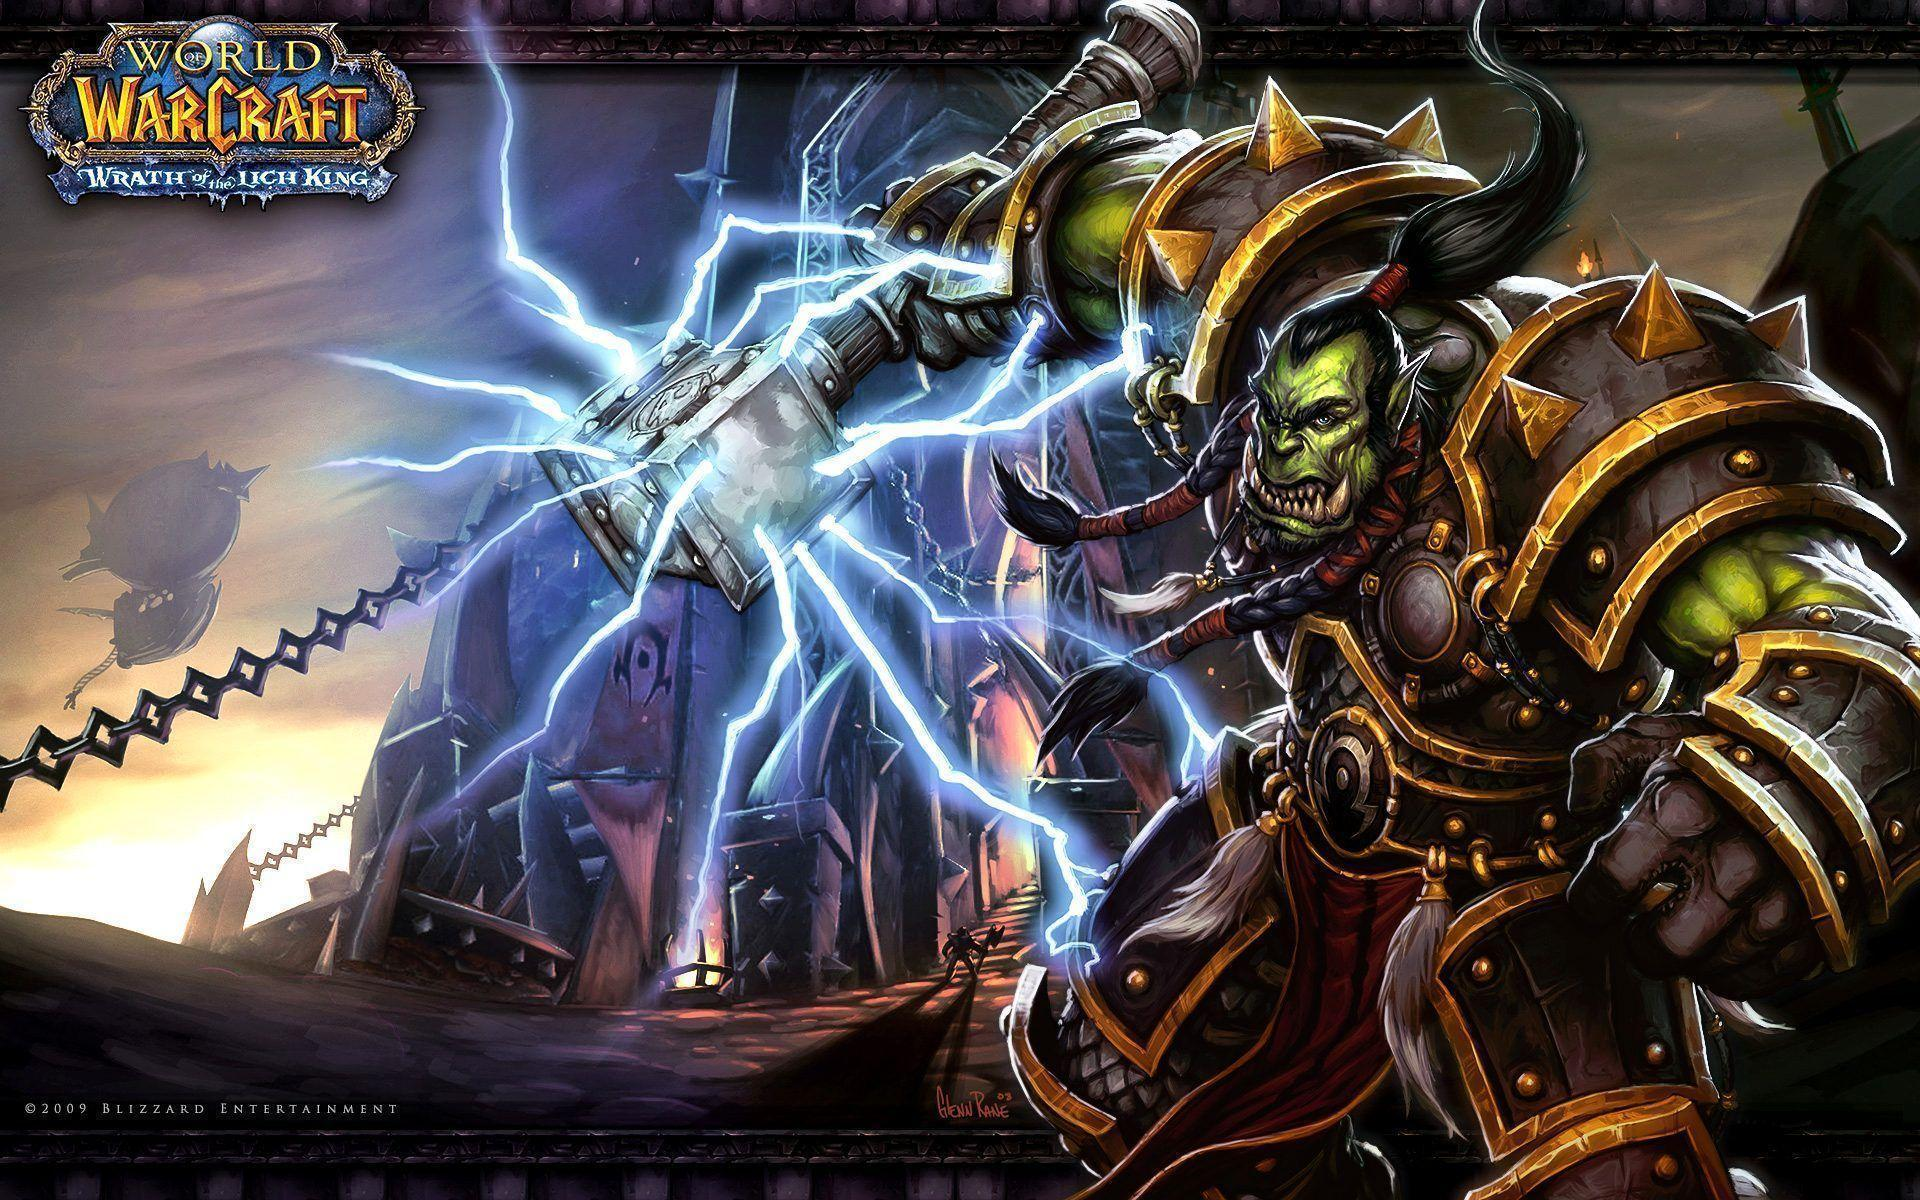 World Of Warcraft Image Hode Signs Wallpapers